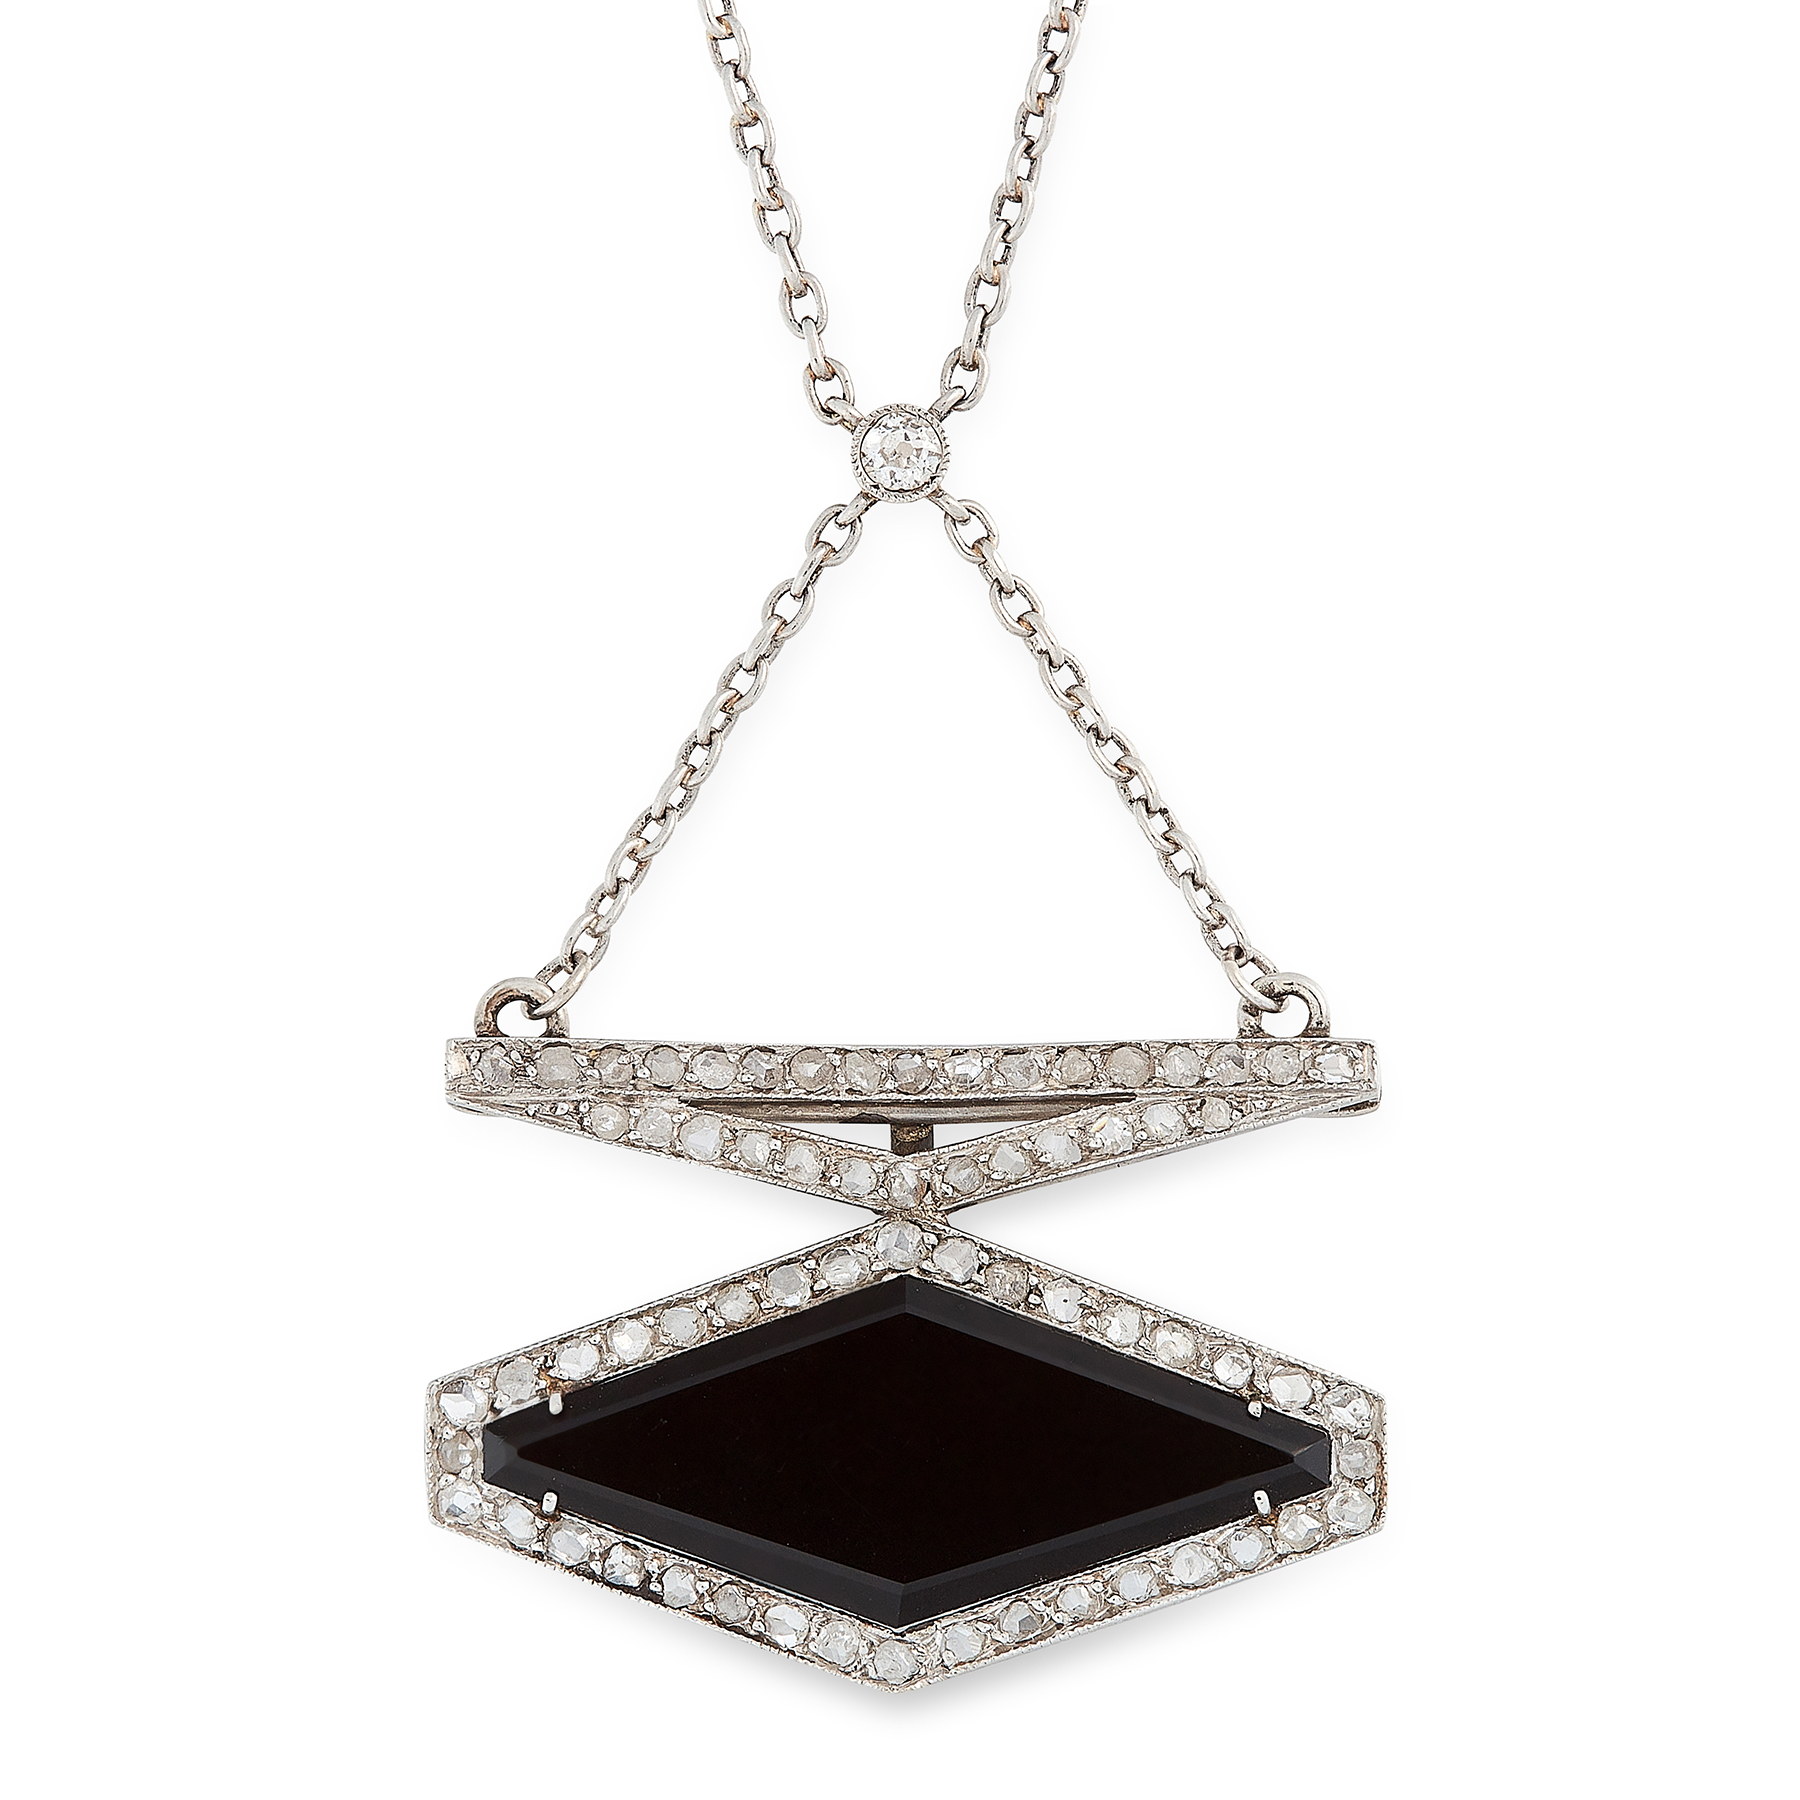 AN ART DECO ONYX AND DIAMOND PENDANT NECKLACE in platinum, set with a polished diamond shaped